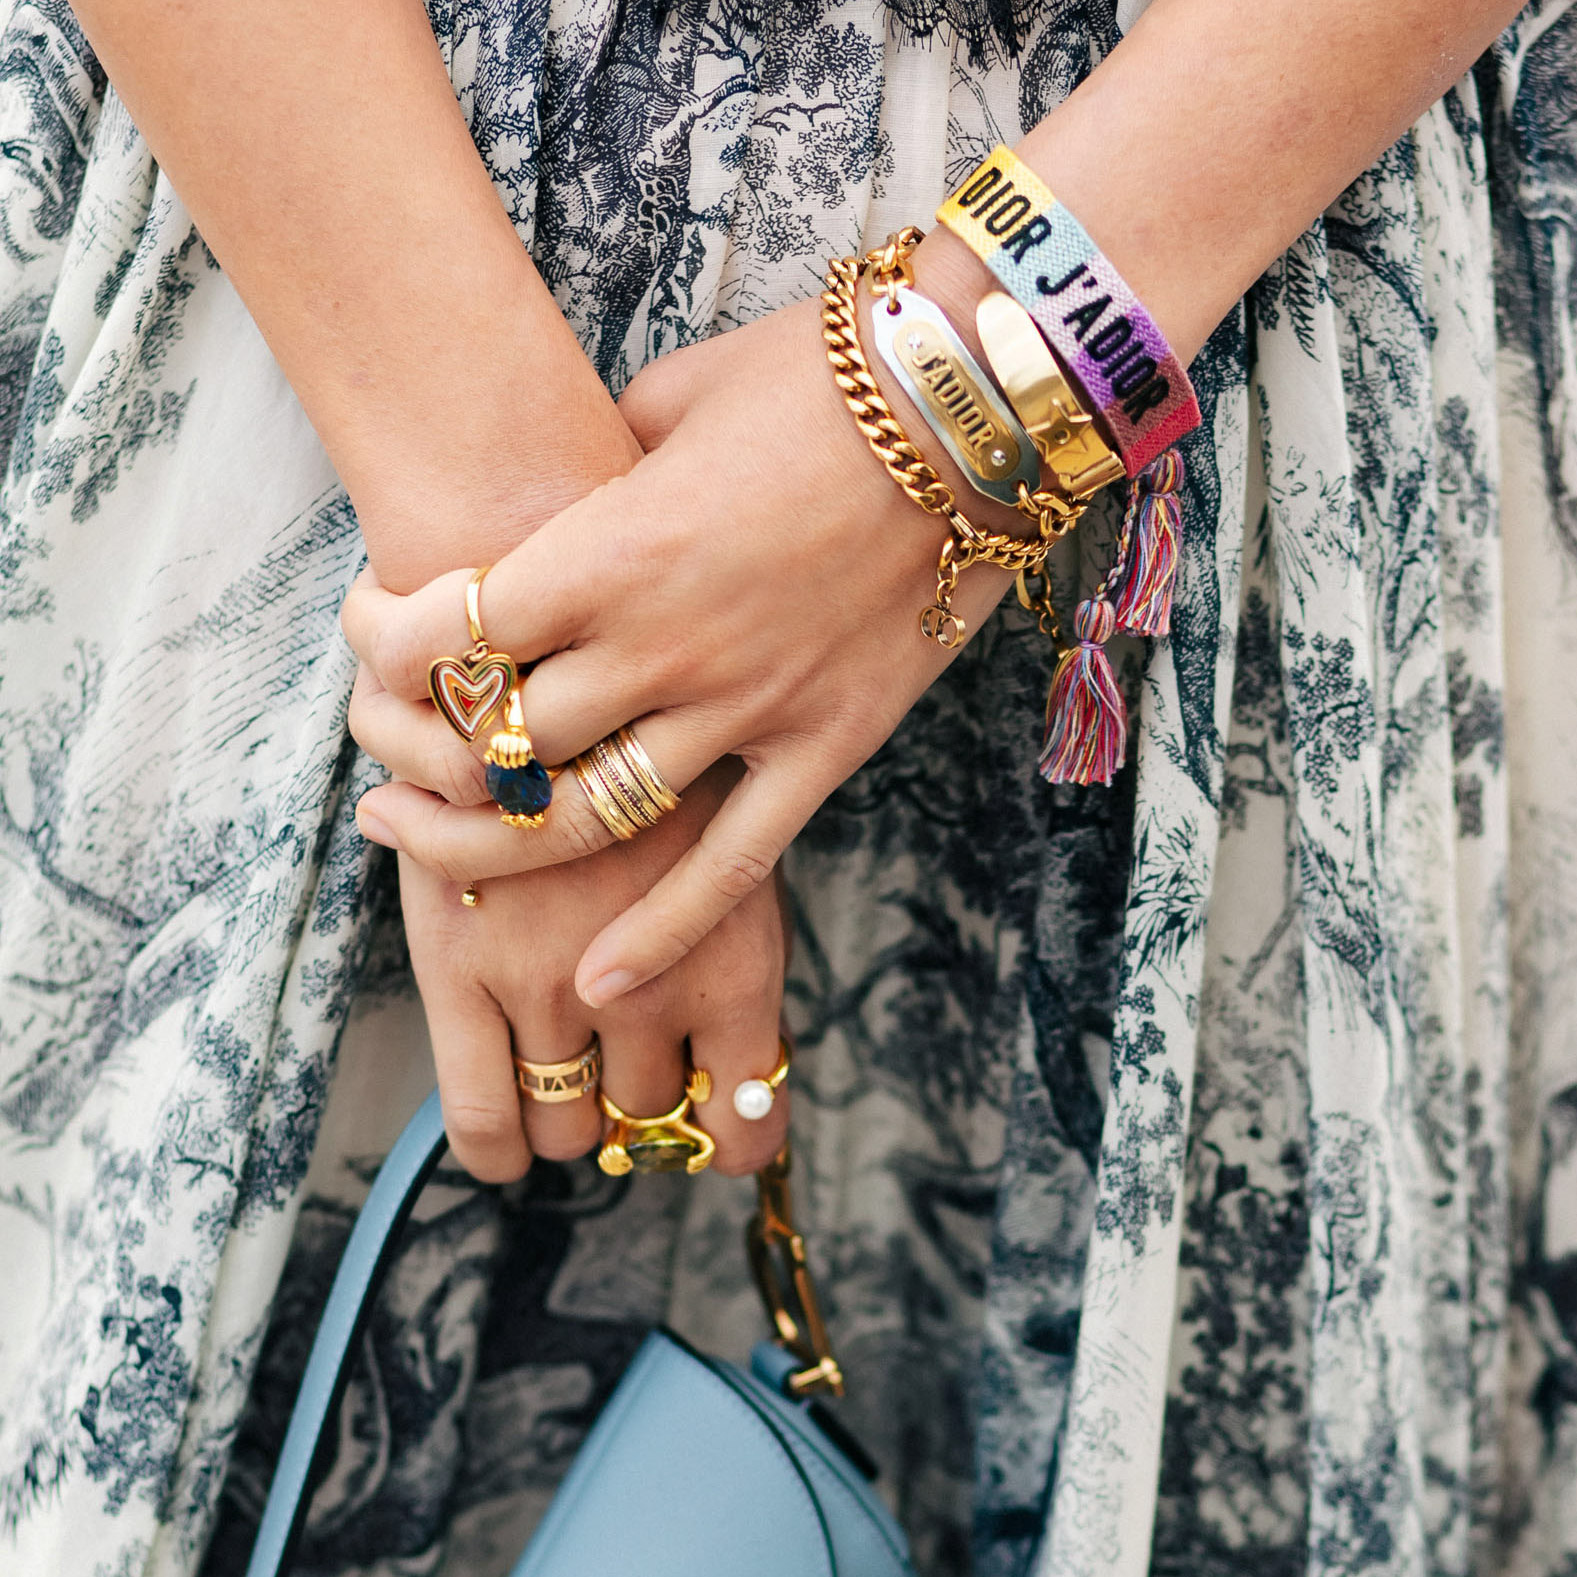 woman holding blue purse wearing bracelets and rings